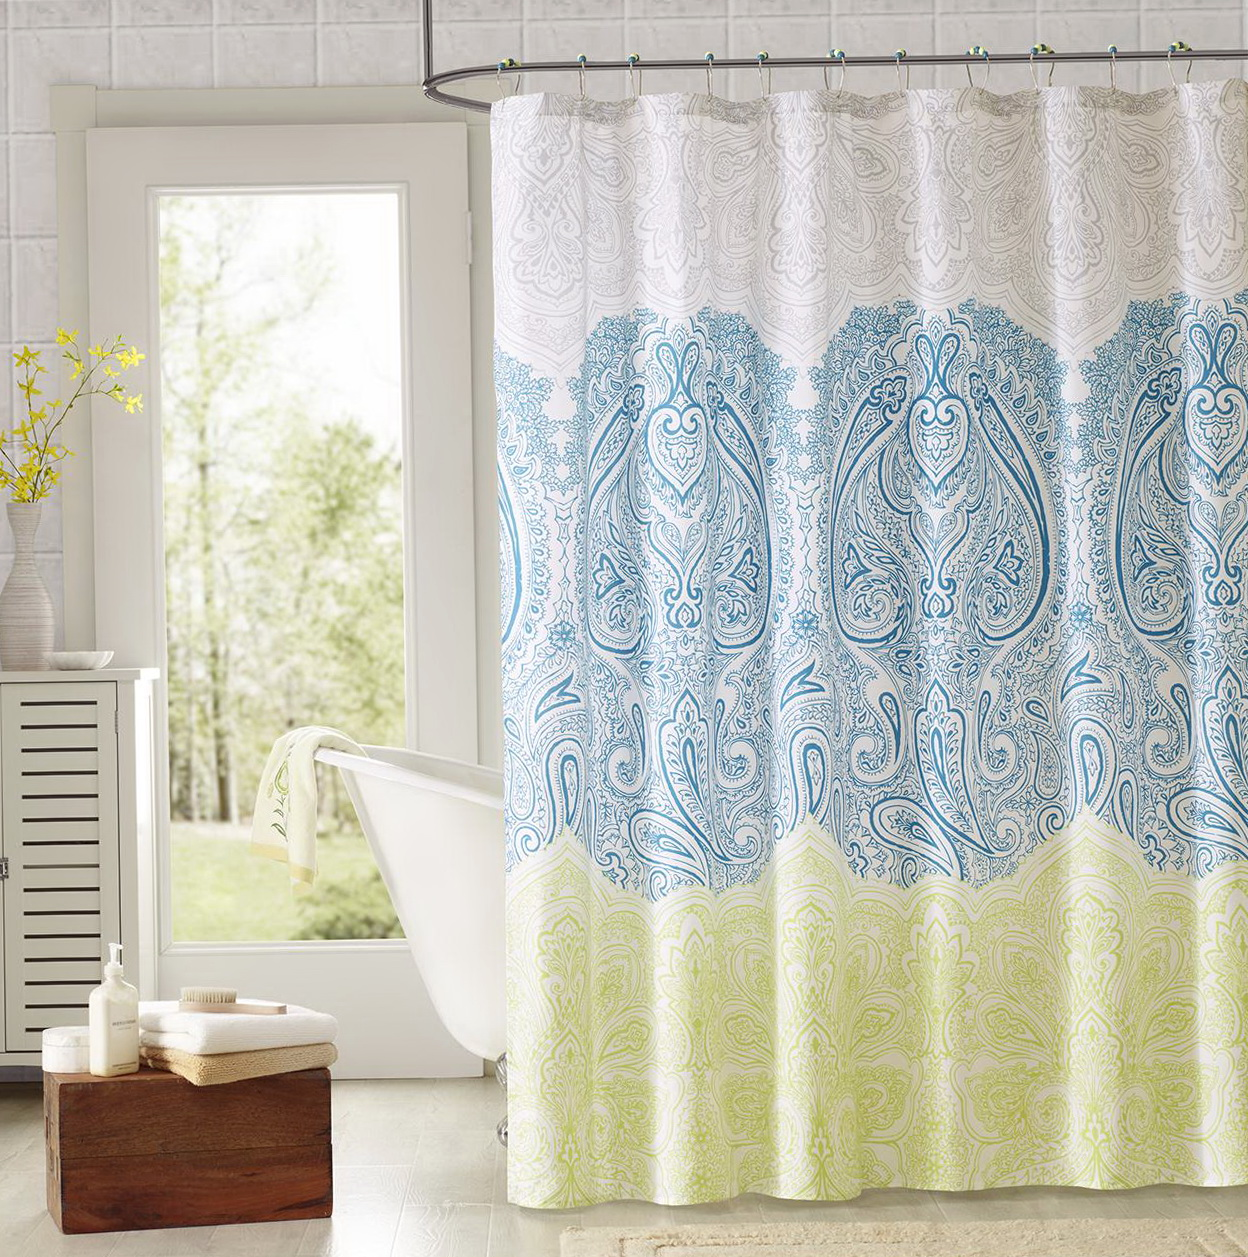 Elegant Shower Curtains Sets Home Design Ideas